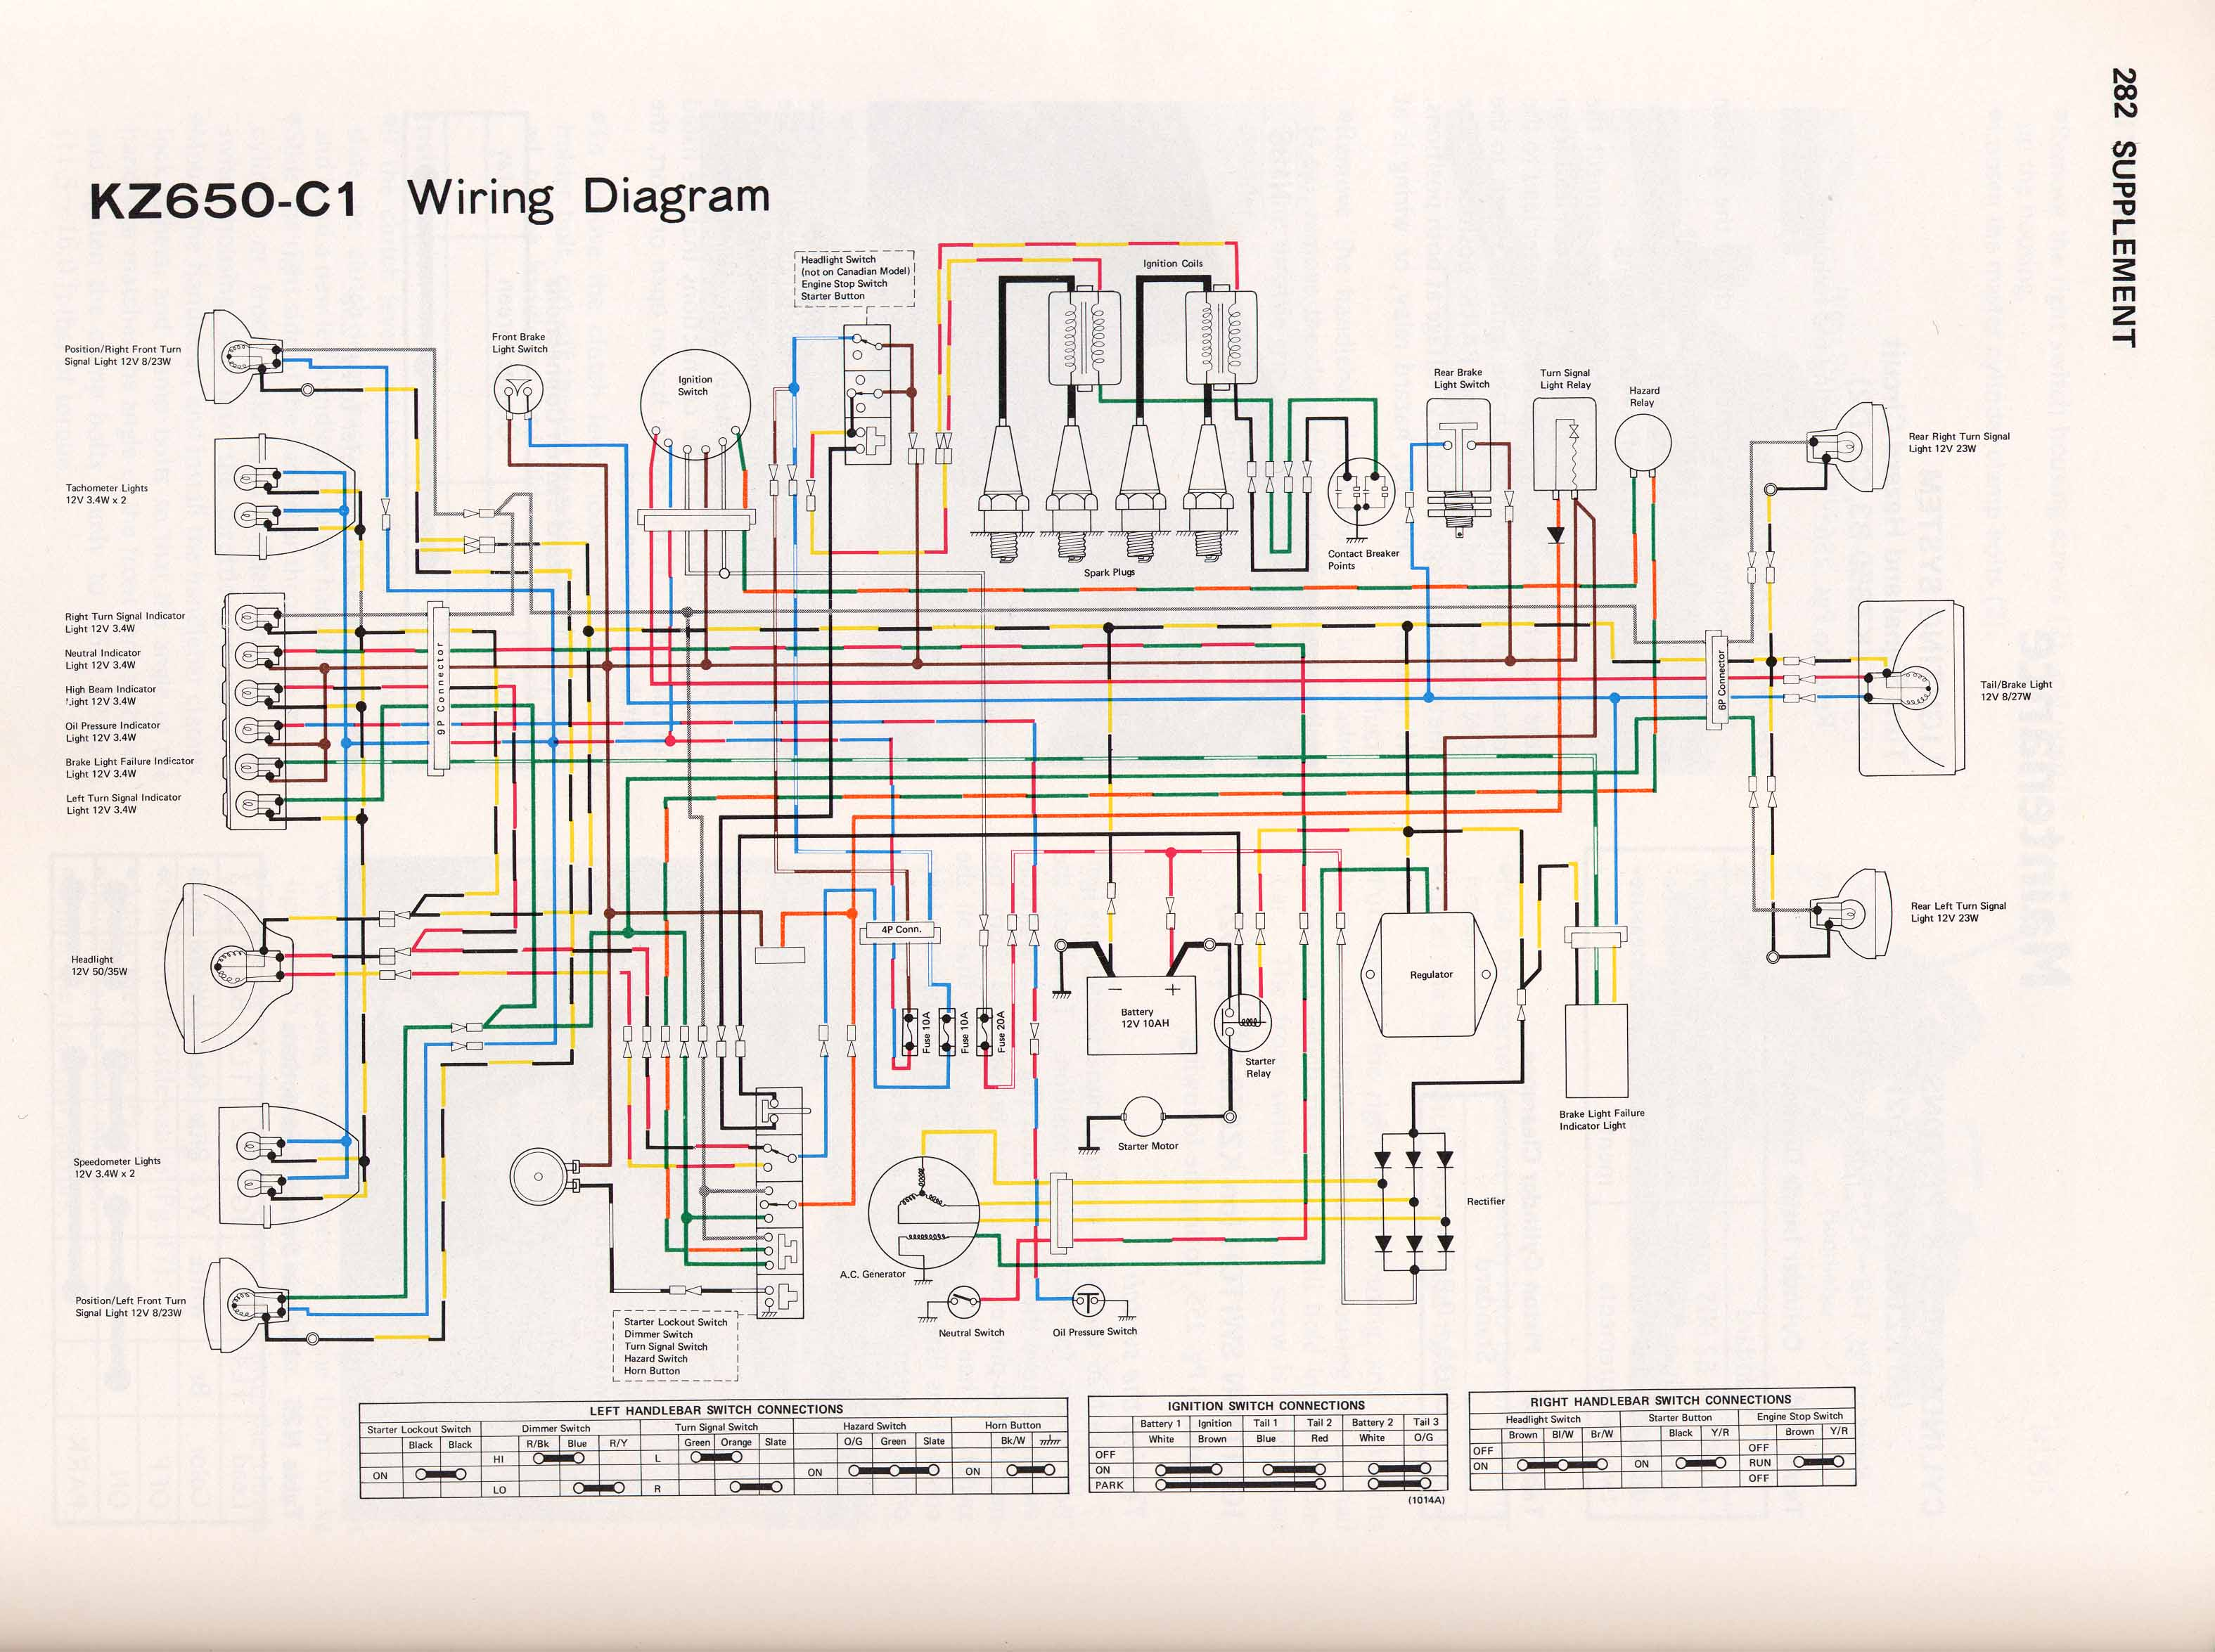 wiring diagram for 1977 1978 kawasaki kz1000 and kz1000ltd evan 1kawasaki kz1000 wiring diagram wiring diagram schematics1978 kawasaki kz1000 wiring diagram free picture schematic diagram 1981